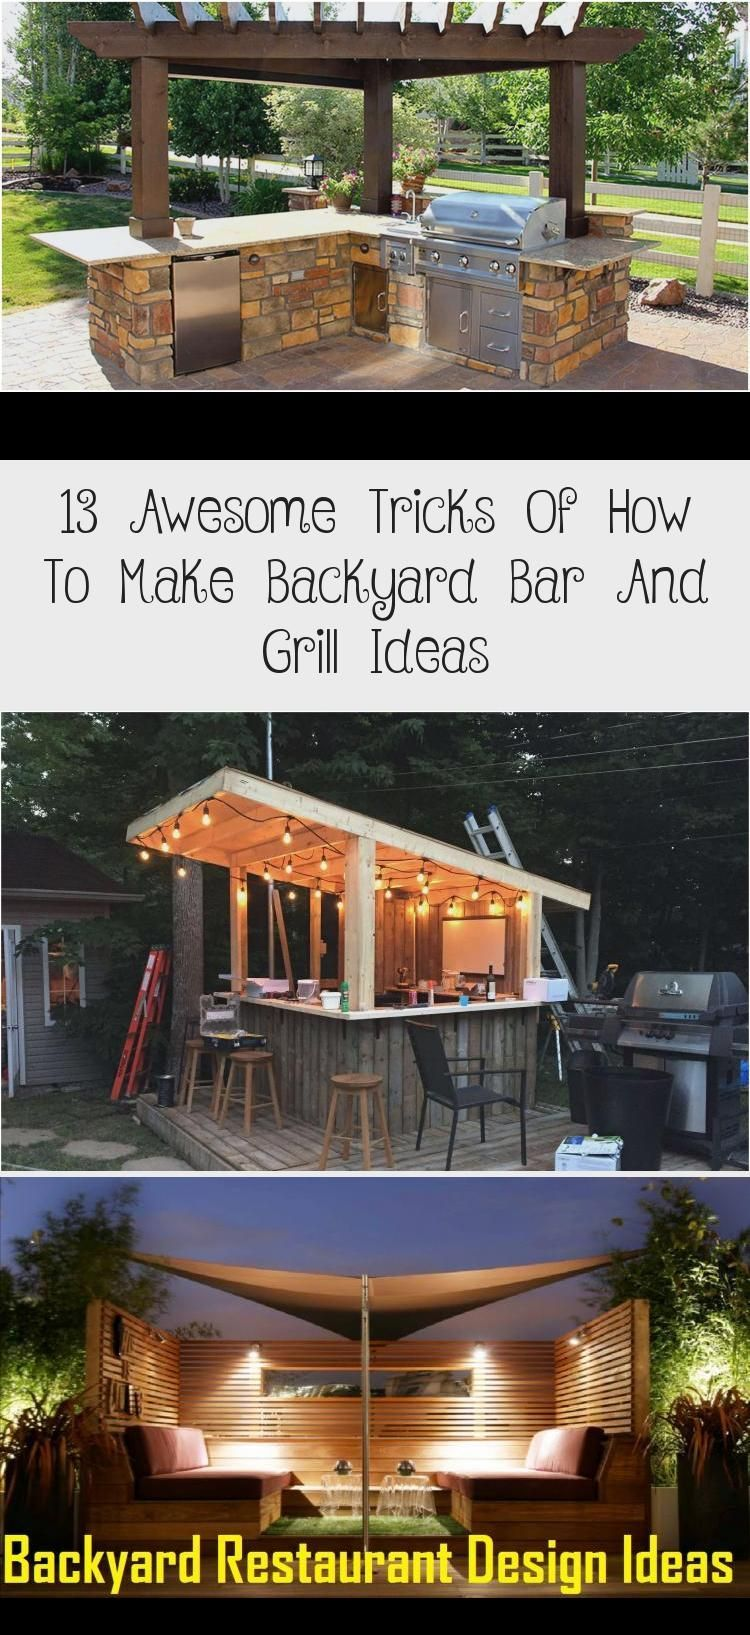 13 Awesome Tricks of How to Make Backyard Bar And Grill ...